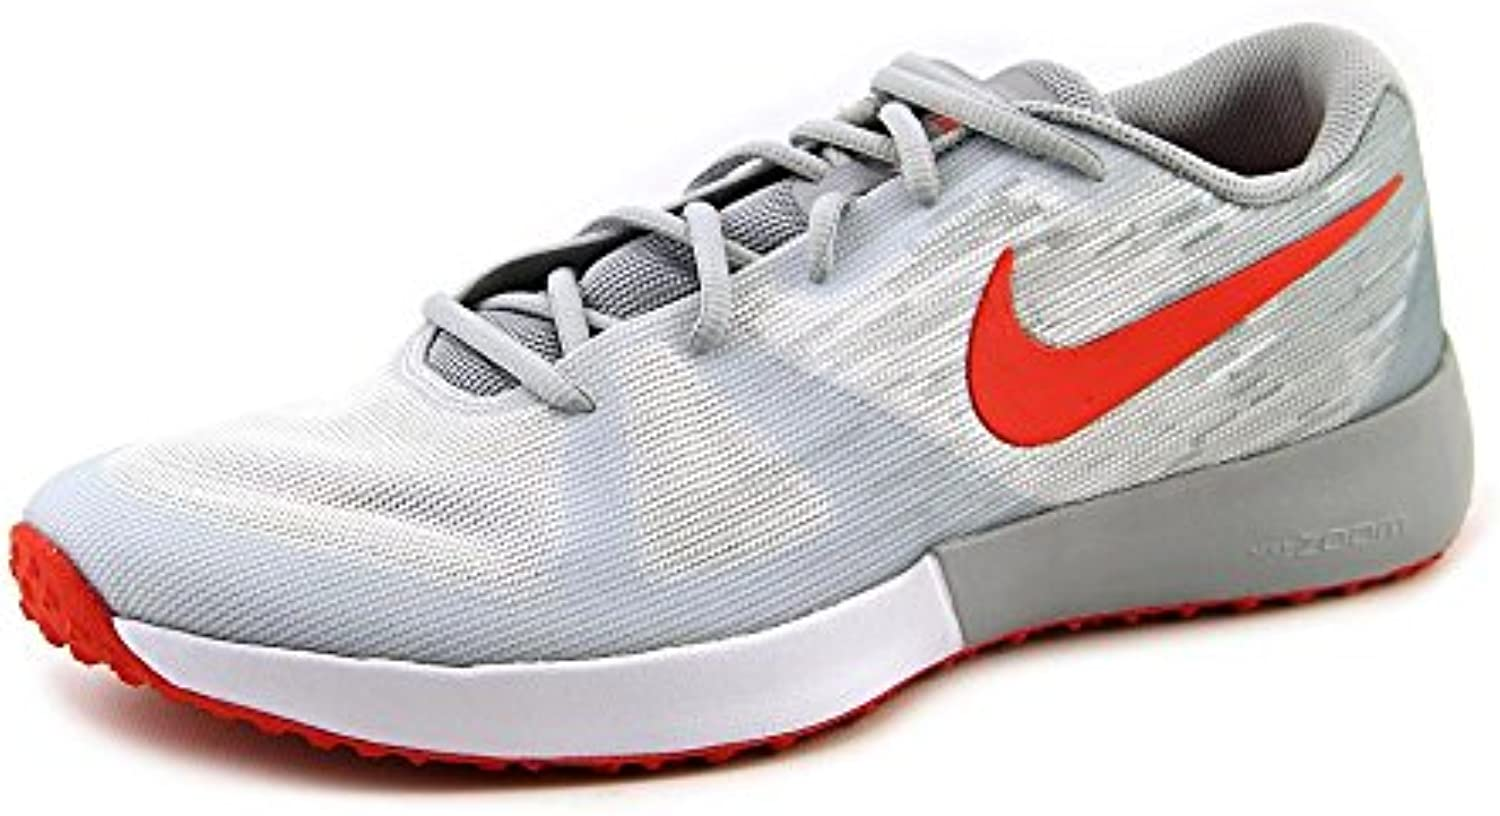 Nike Zoom Speed TR 630855 630855 630855 – 160 | Meno Costosi Di